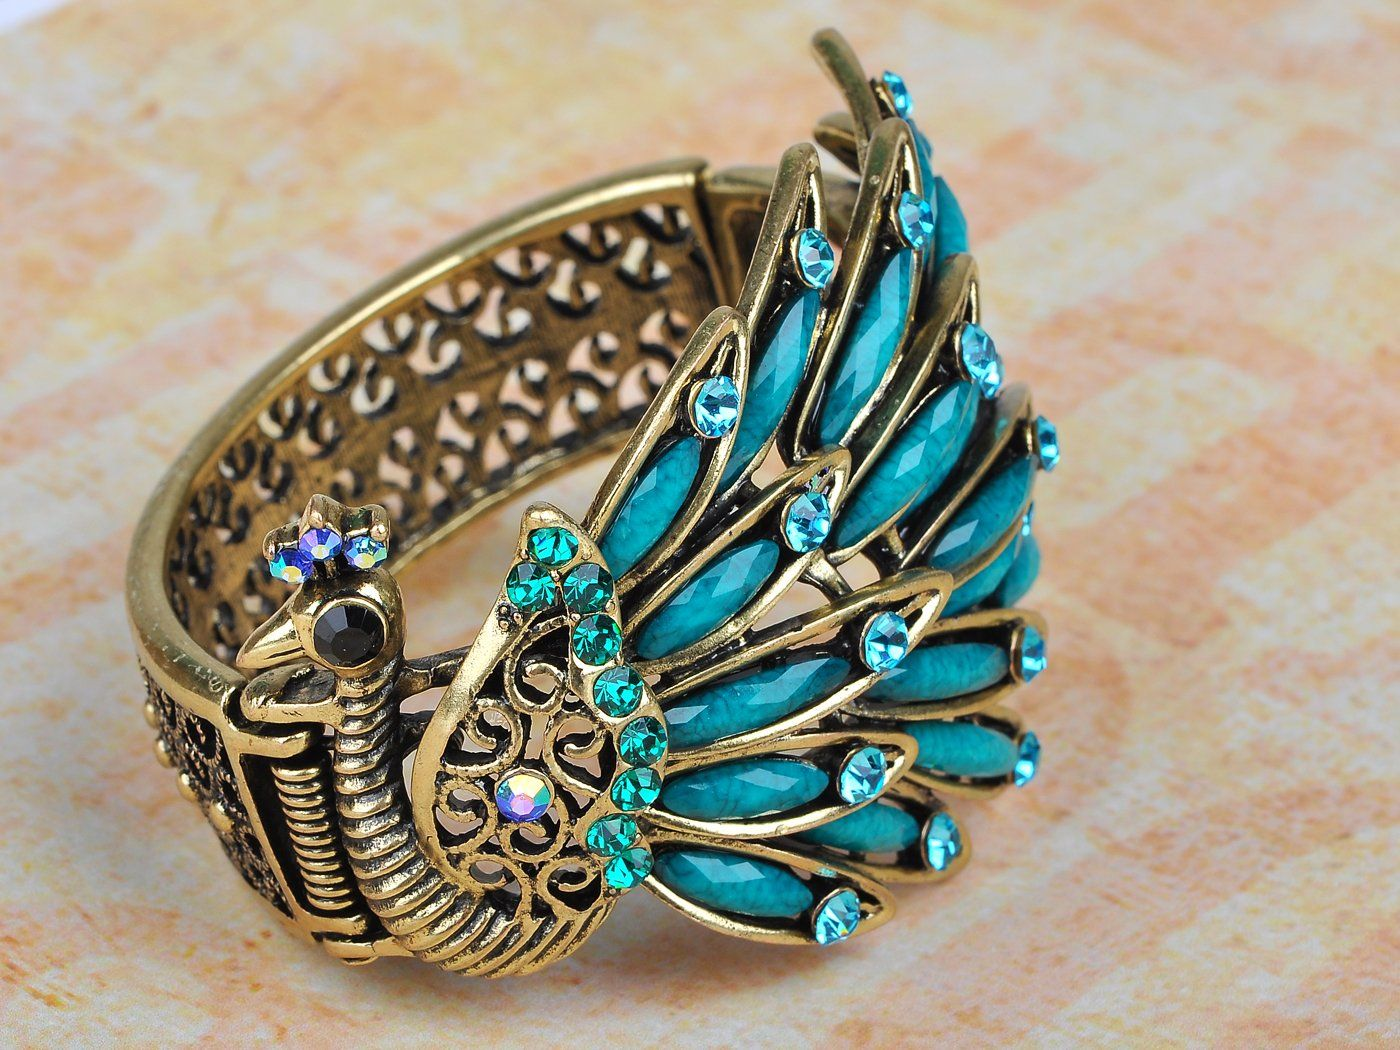 Amazon.com: Golden Blue Beads Crystal Rhinestone Gems Side Profile Peacock Bracelet Bangle: Jewelry